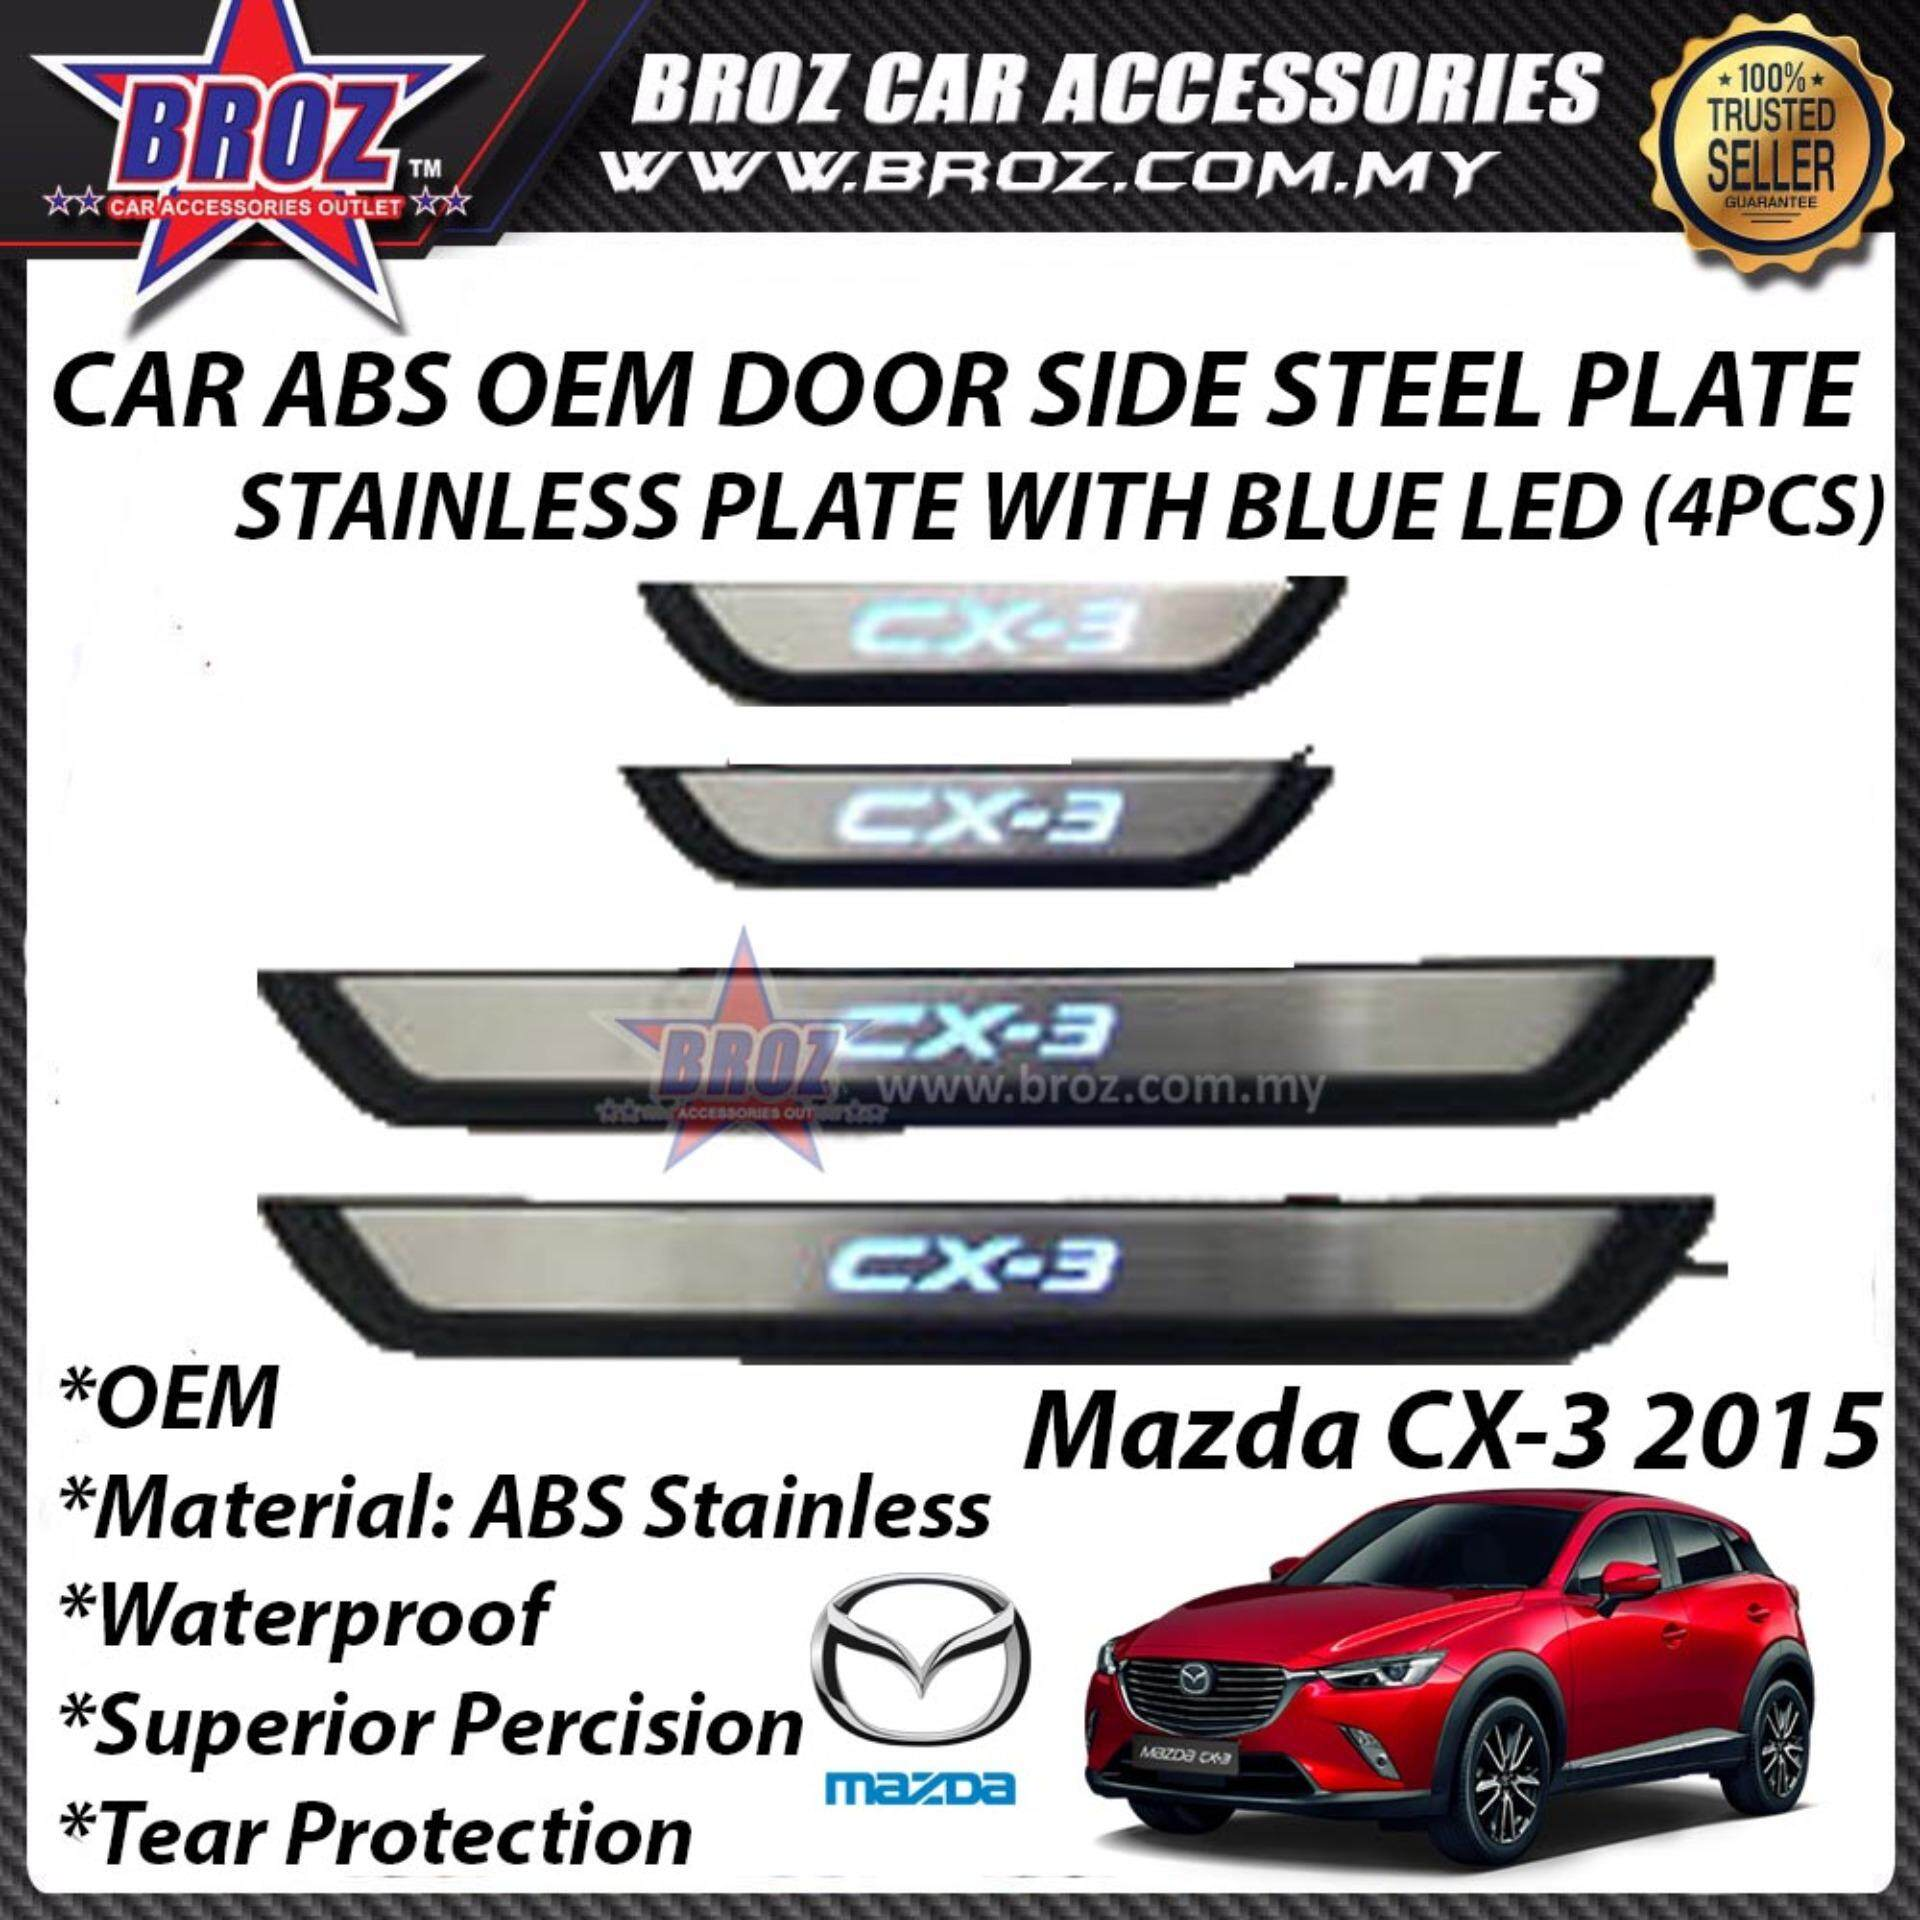 Broz Mazda CX-3 2015 ABS Side Steel Plate/Door Side Step With Led Blue